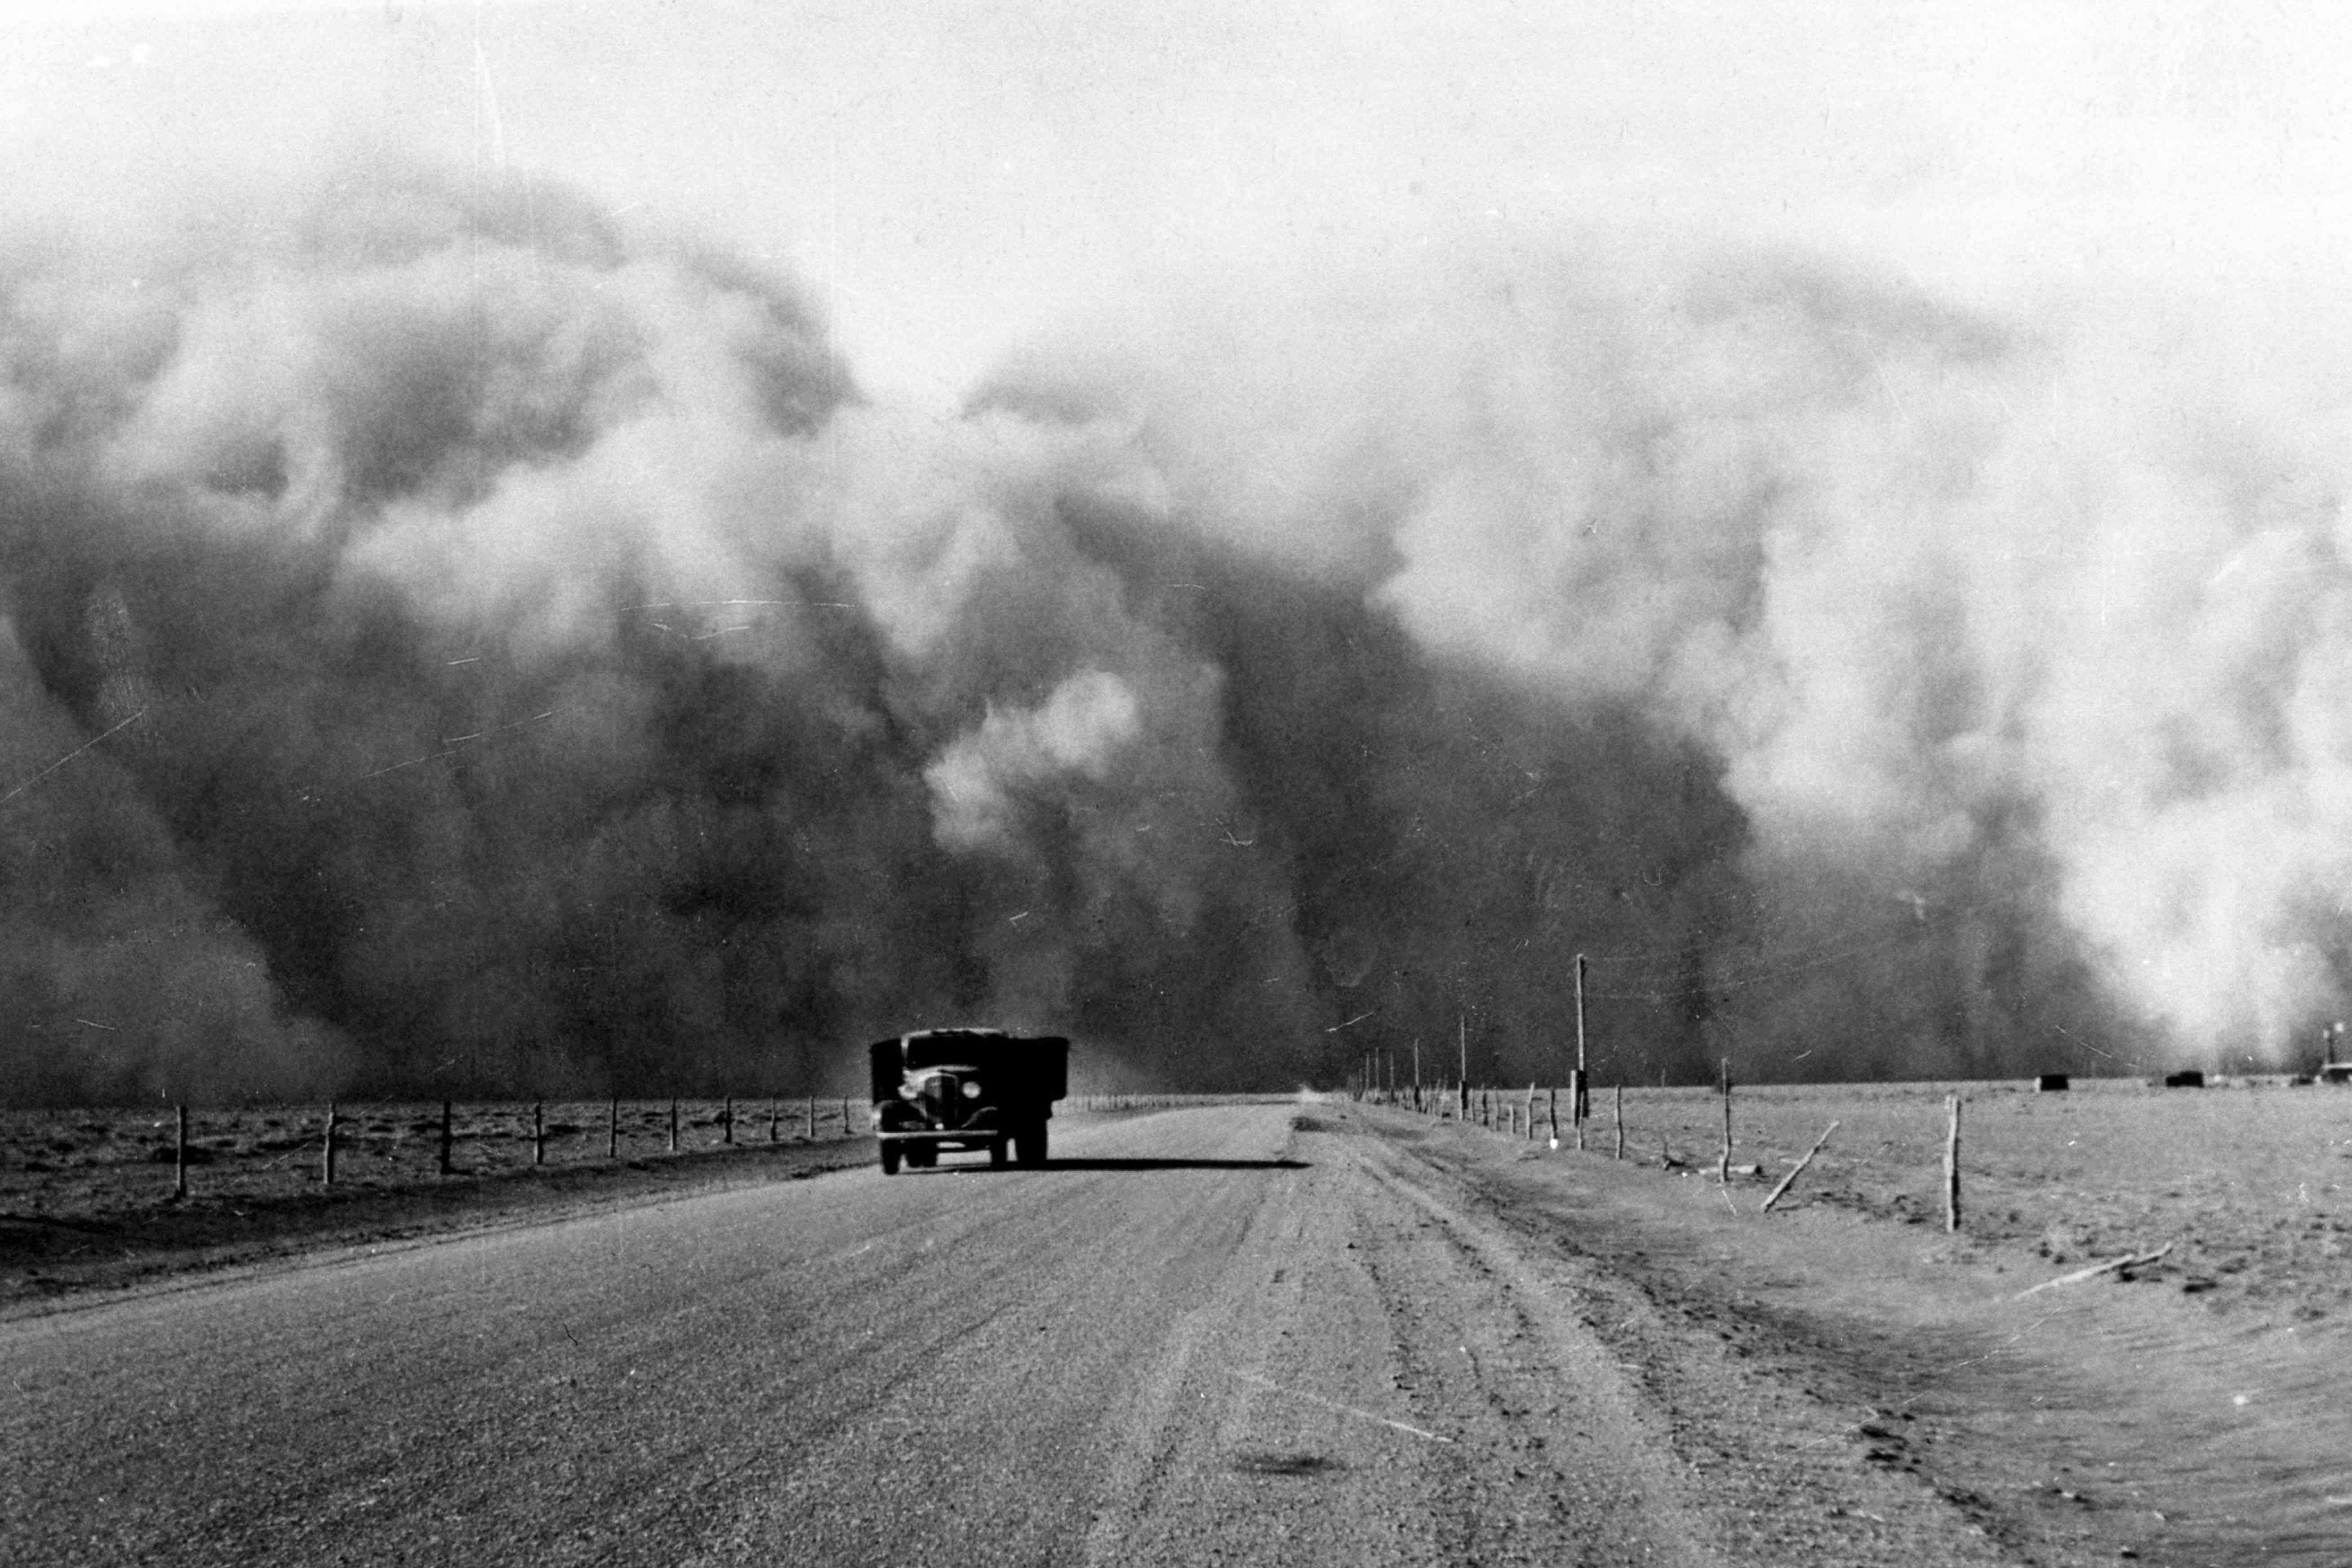 Dust cloud fills the sky and truck drives on dirt road away from it